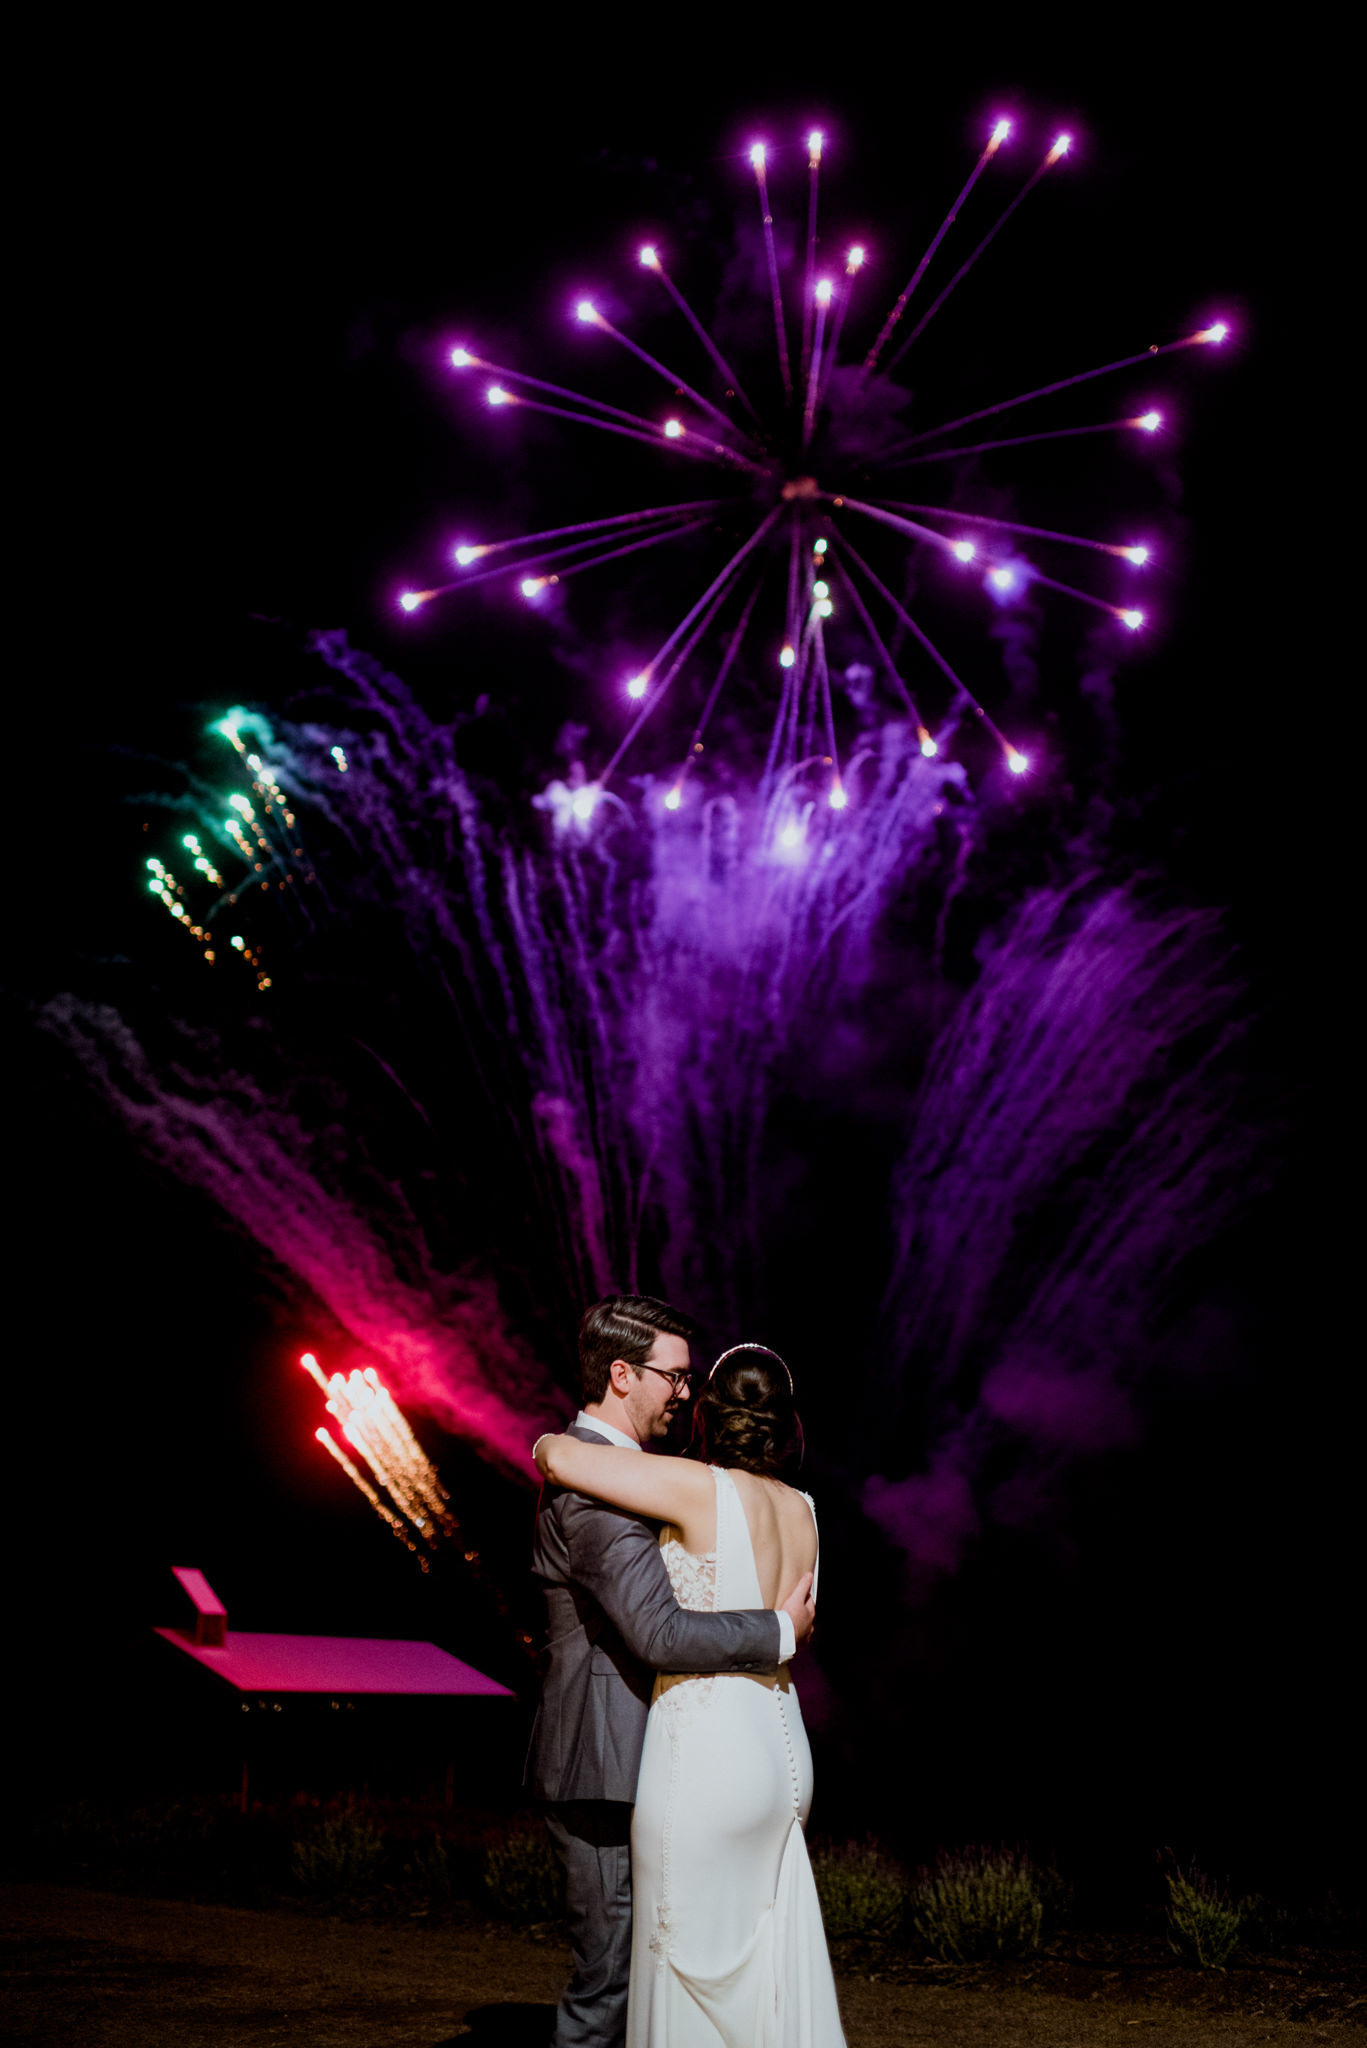 A bride watches a colourful fireworks display at Kooroomba as a groom holds and faces her